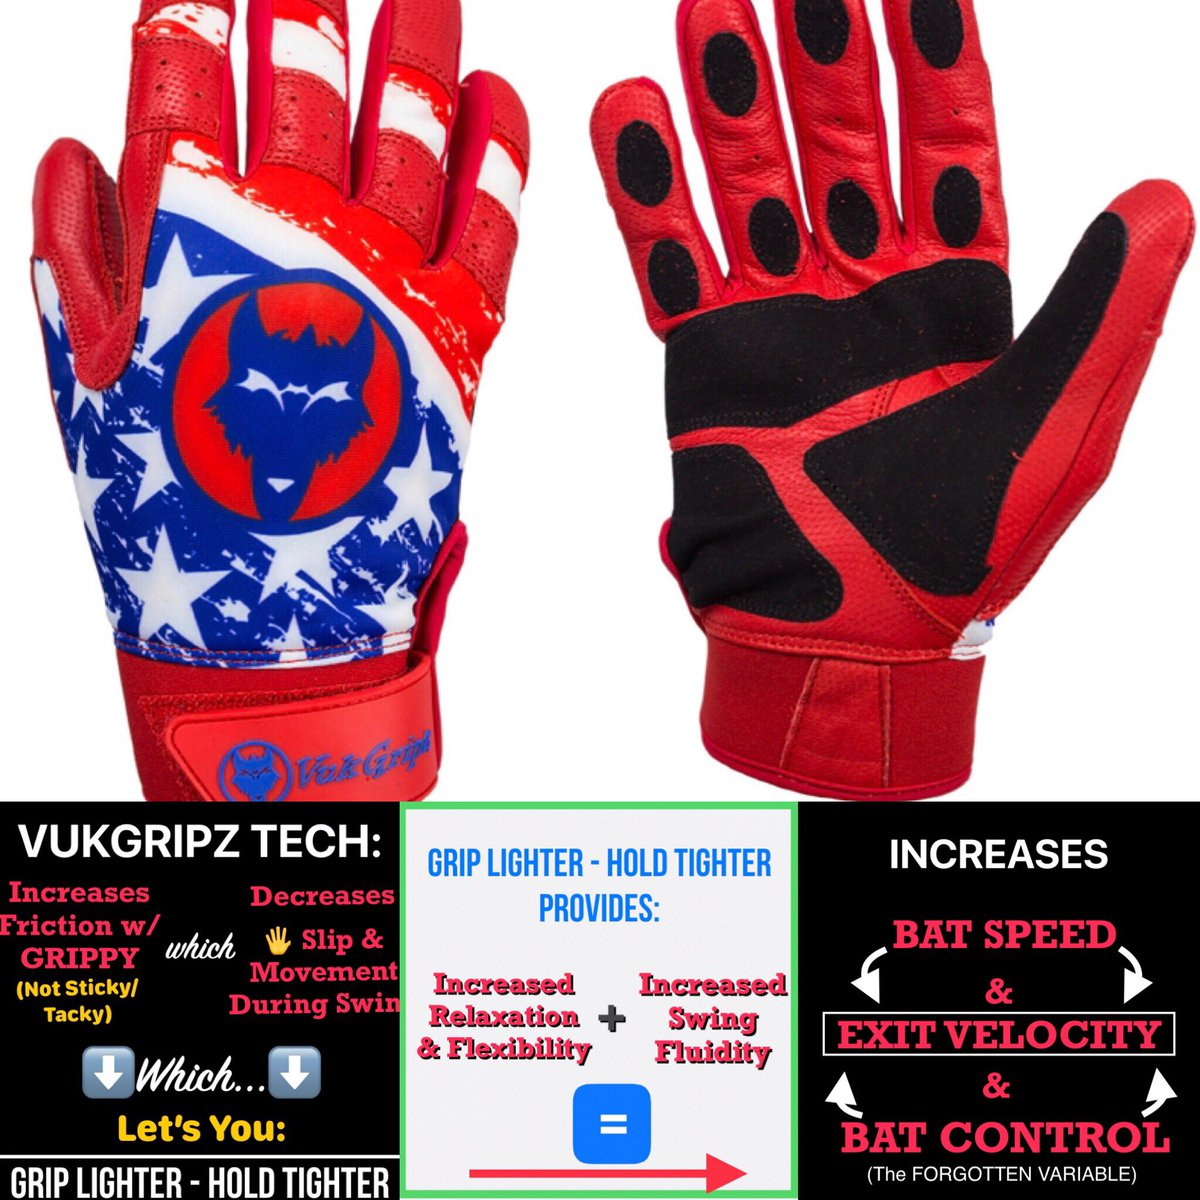 HIT THE  FARTHER w/ VUKGRIPZ!  VukGripz #science & #physics explains it in the picture!   GRIPPY outperforms STICK/TACKY any day!  #hittingcoach #baseball #softball #baseballplayer #softballplayer #battinggloves #vukgripz #dingers #exitvelocity #batspeed #batcontrolpic.twitter.com/i9exXREfDg